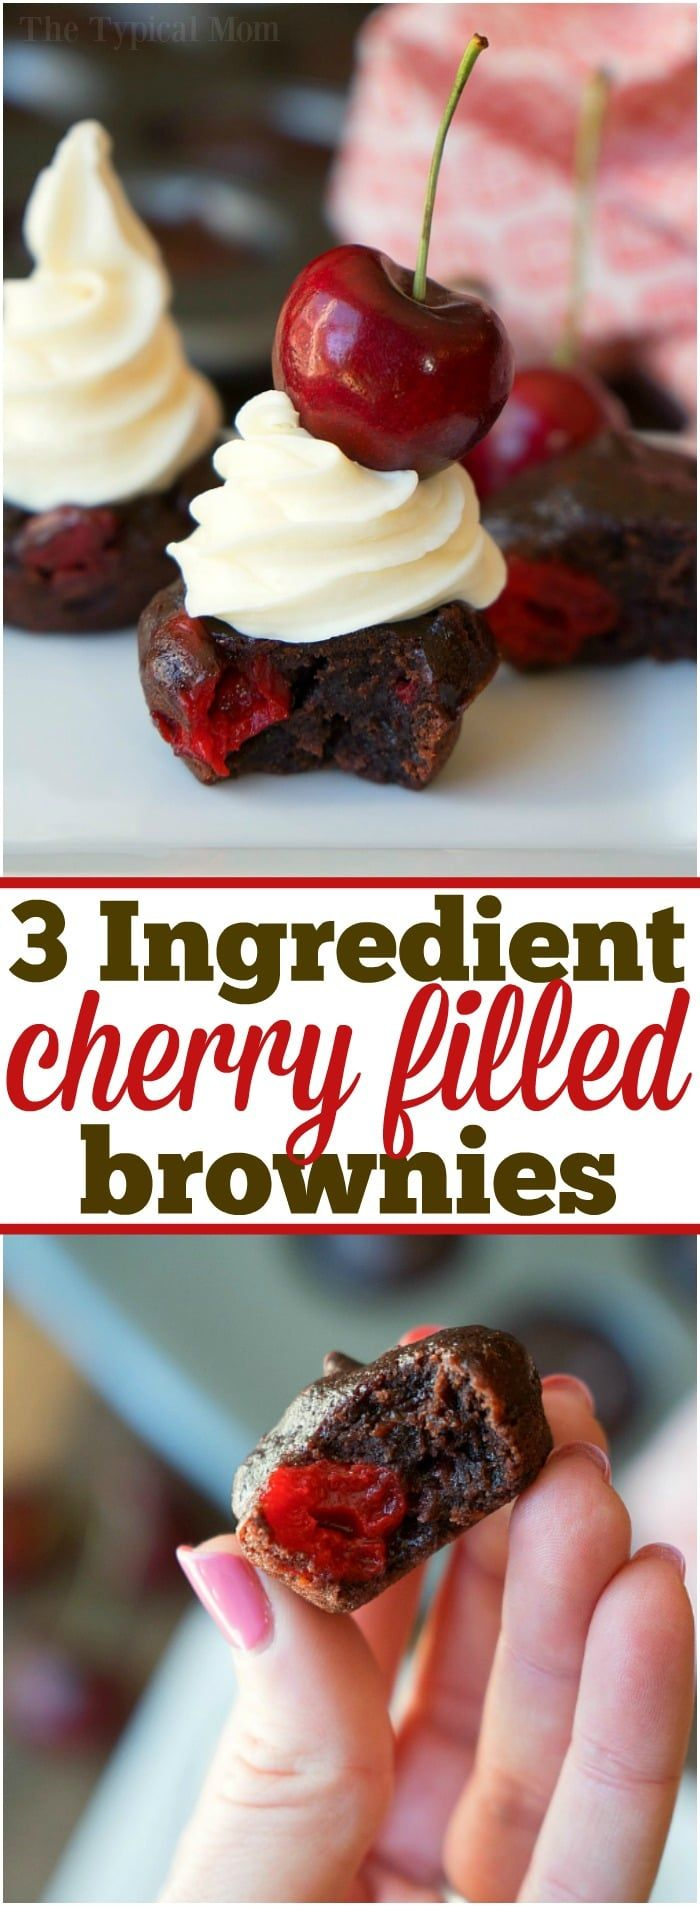 So easy to make these mini cherry brownies!  I made these today and it made 36 mini brownies... yummy!